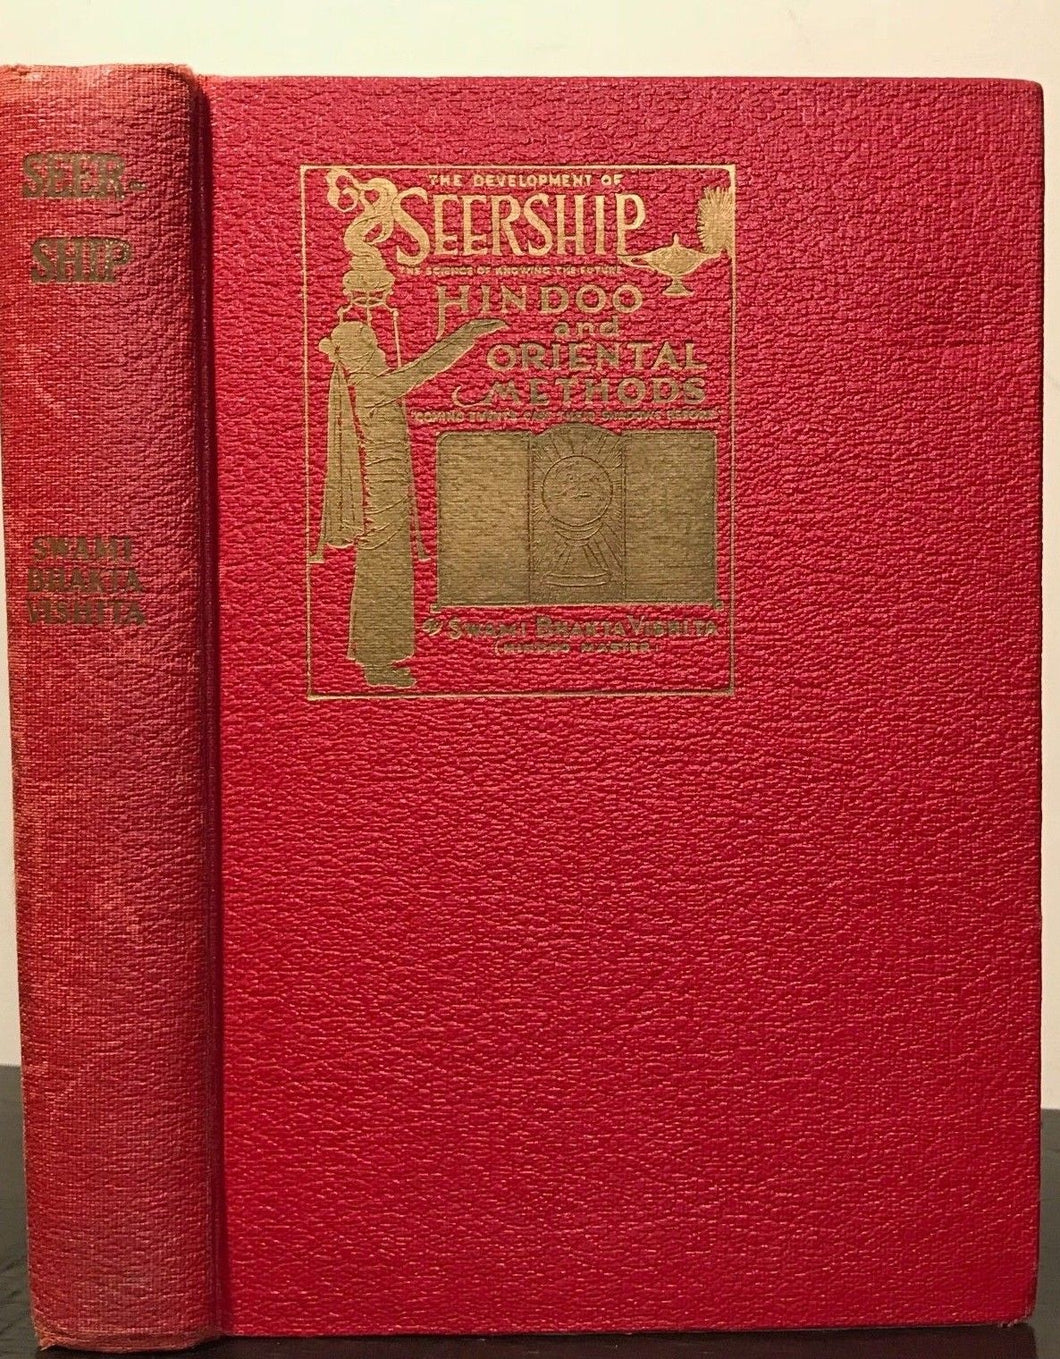 SEERSHIP: SCIENCE OF KNOWING THE FUTURE, HINDOO, ORIENTAL METHODS, 1915 Divining